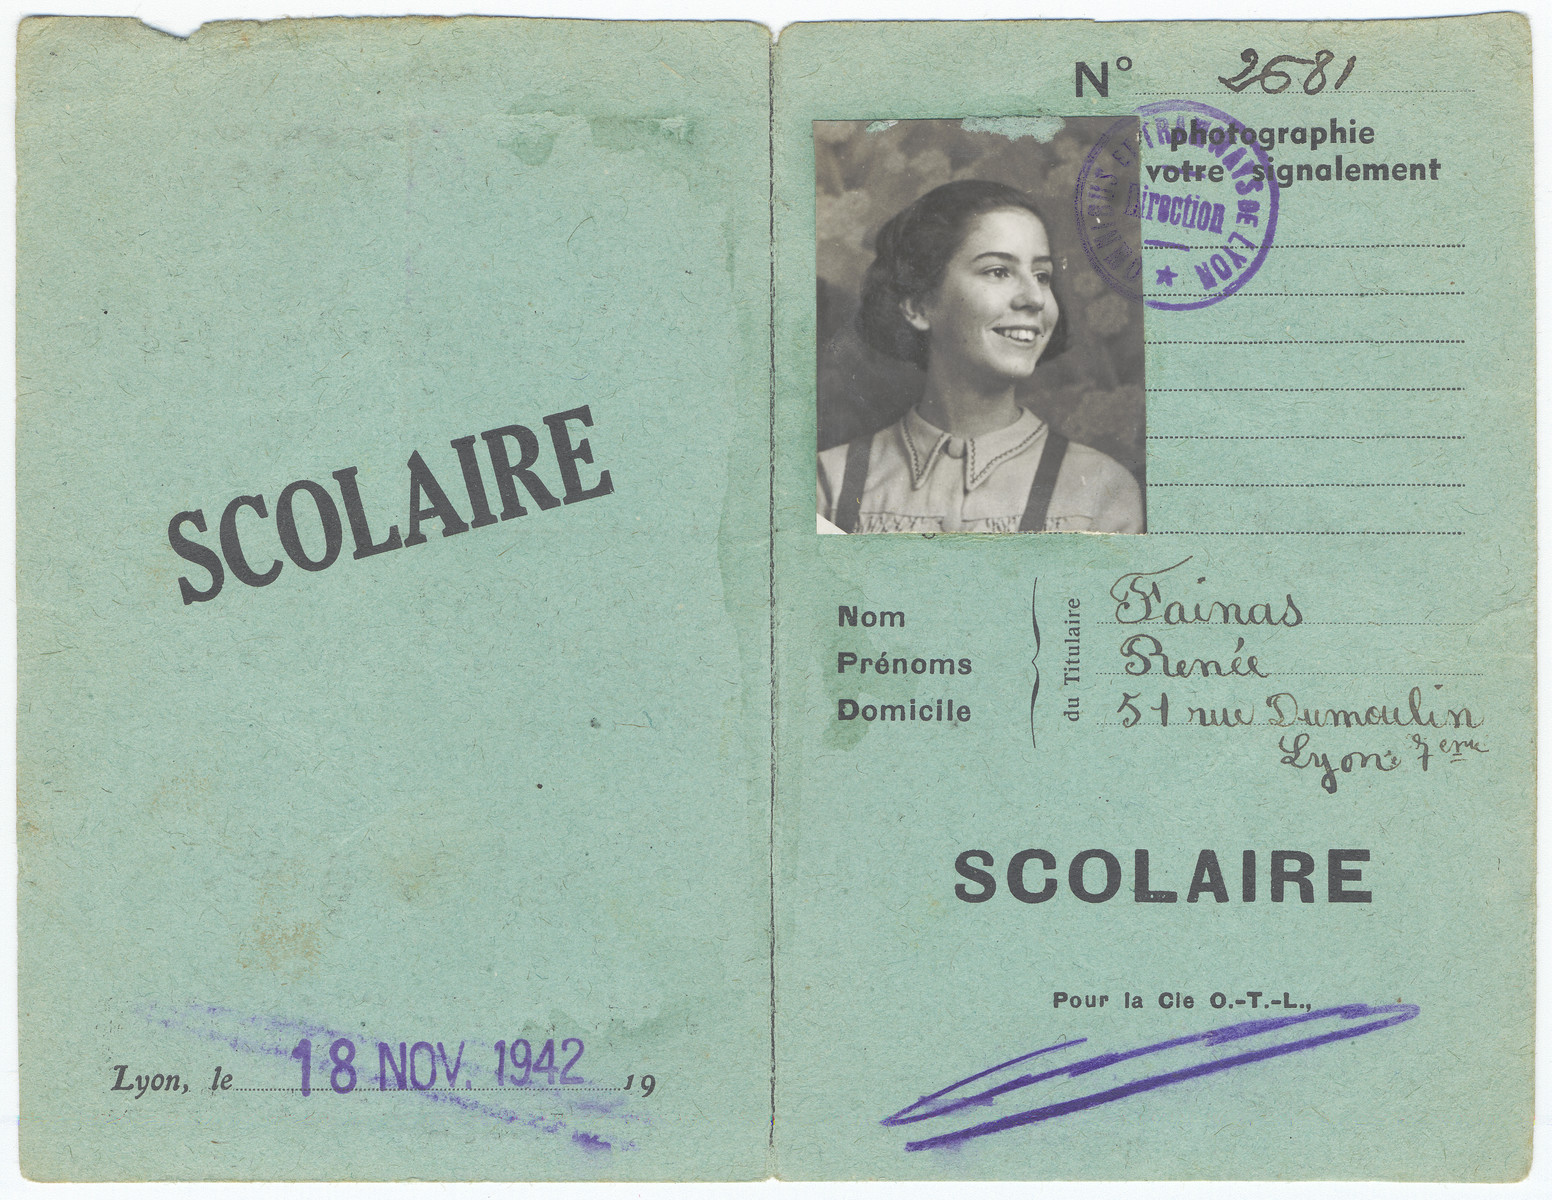 Student identification card issued to Renee Fainas, a Jewish child living in semi-hiding under her own name.